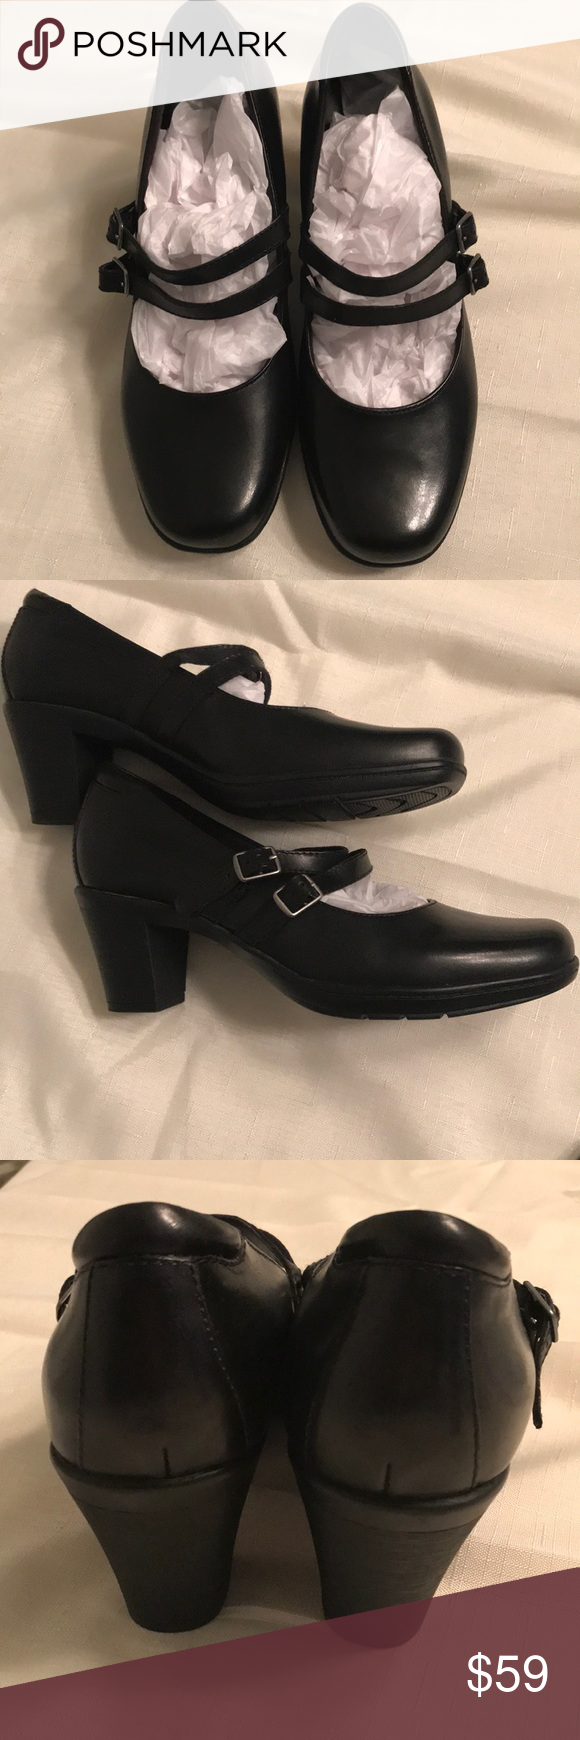 9447e51695740 NWT Clark's Black Leather Mary Jane's Size 8M These Clark's Bendables Black  Leather Mary Jane Heels With Double Straps for added comfort NWT 2.5 inch  Block ...